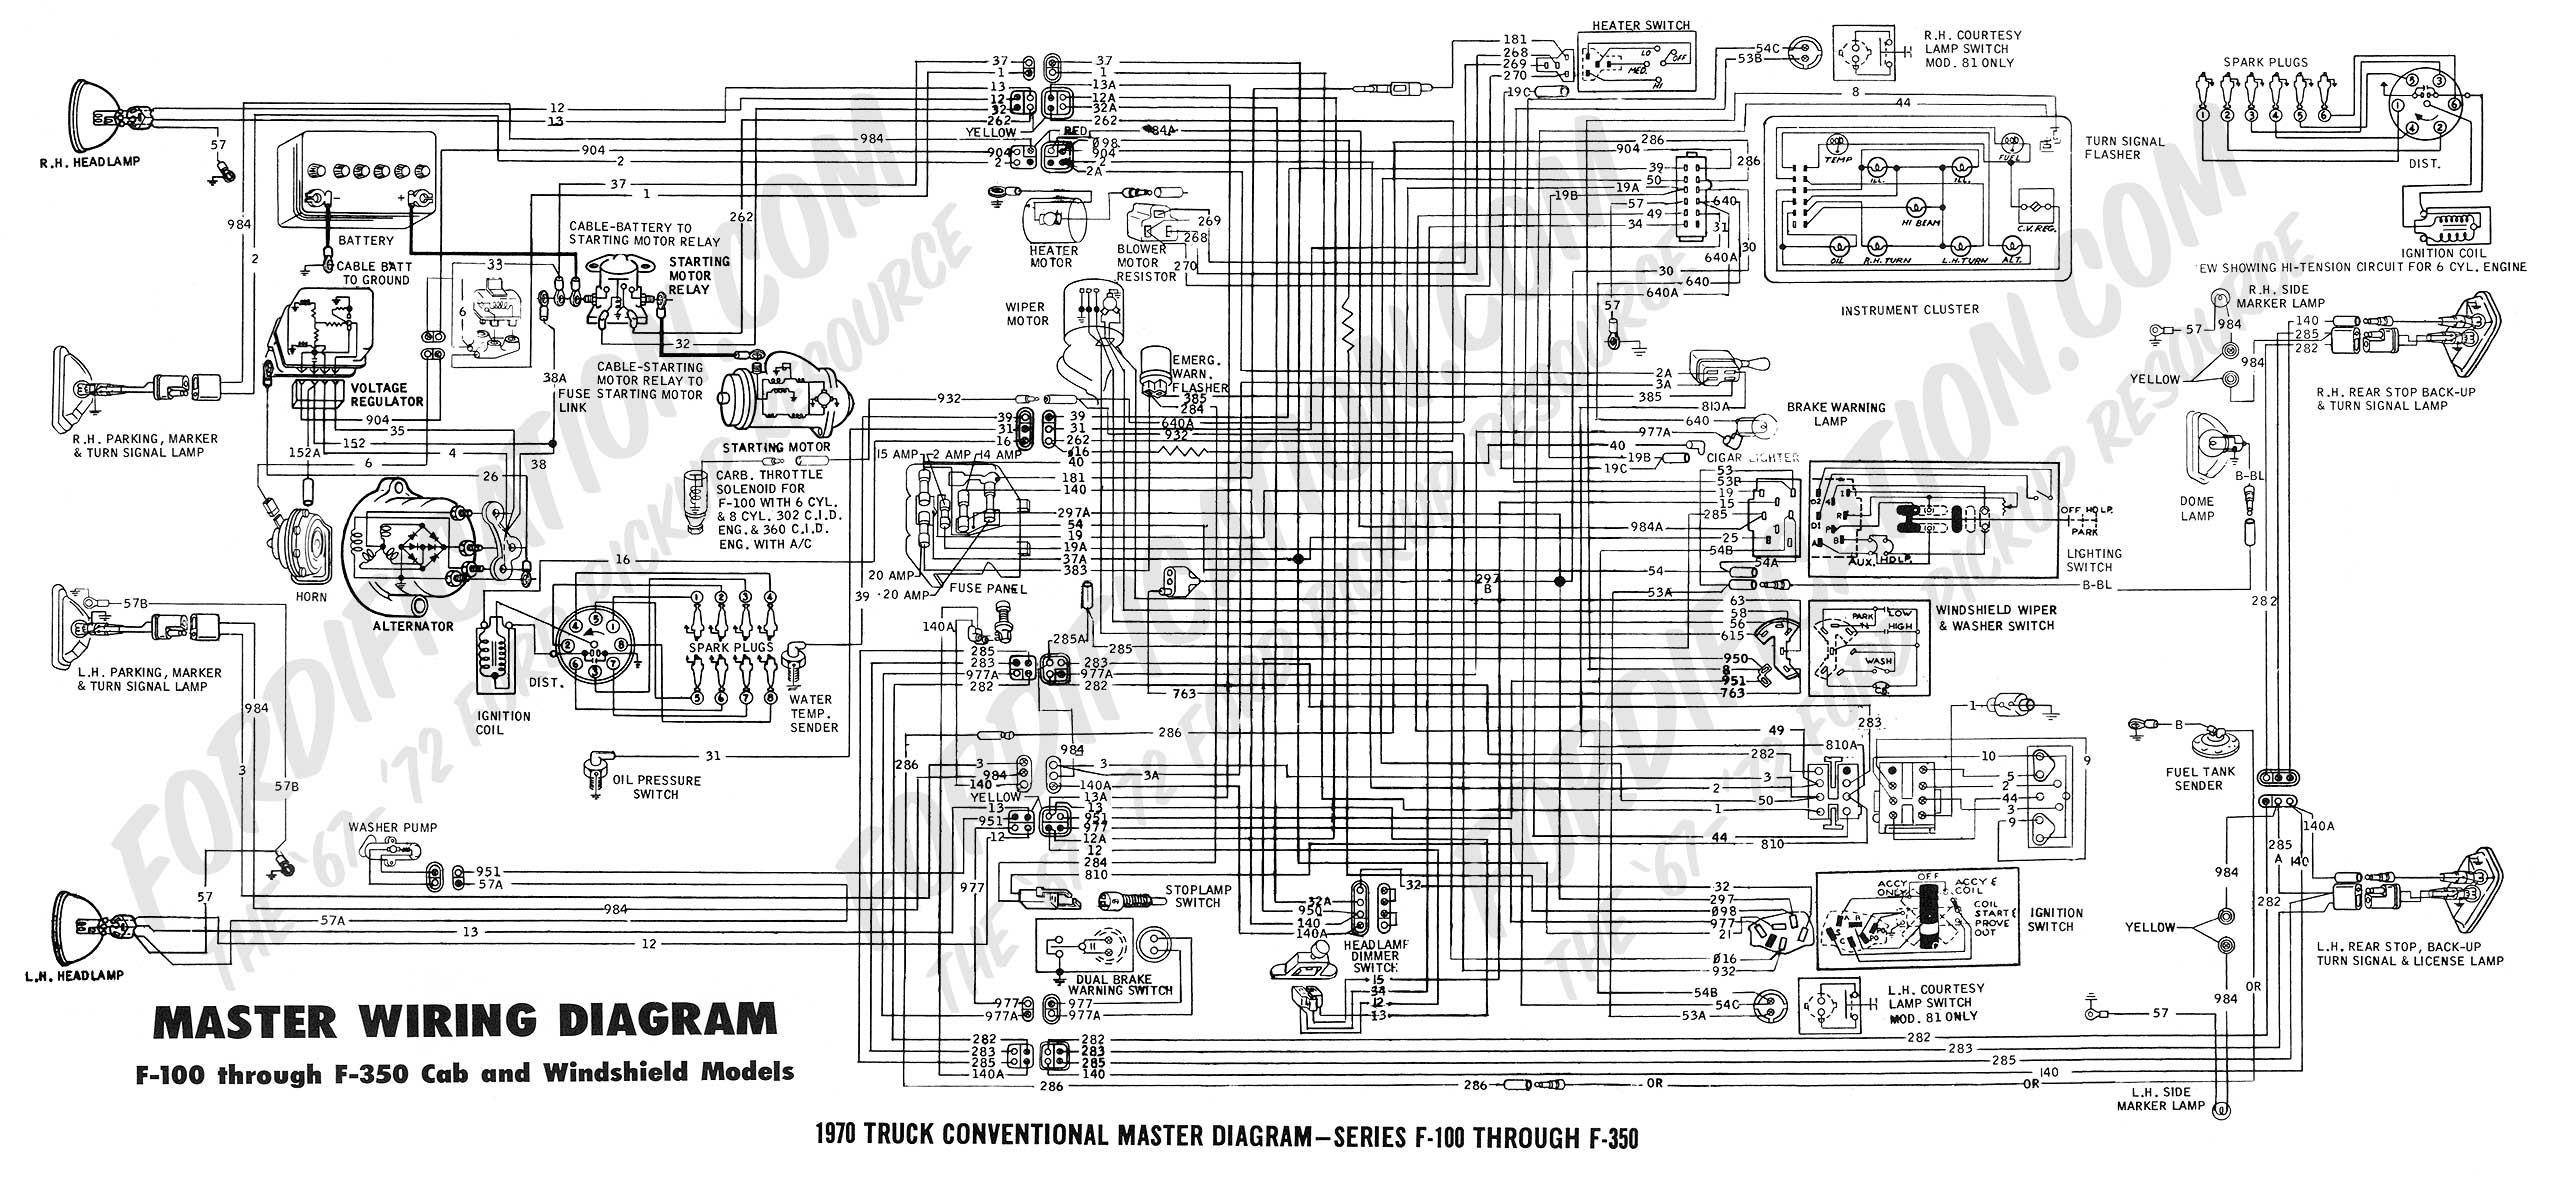 wiring diagram 70_master camper wiring diagram manual slide in camper wiring diagram truck camper wiring diagram at arjmand.co